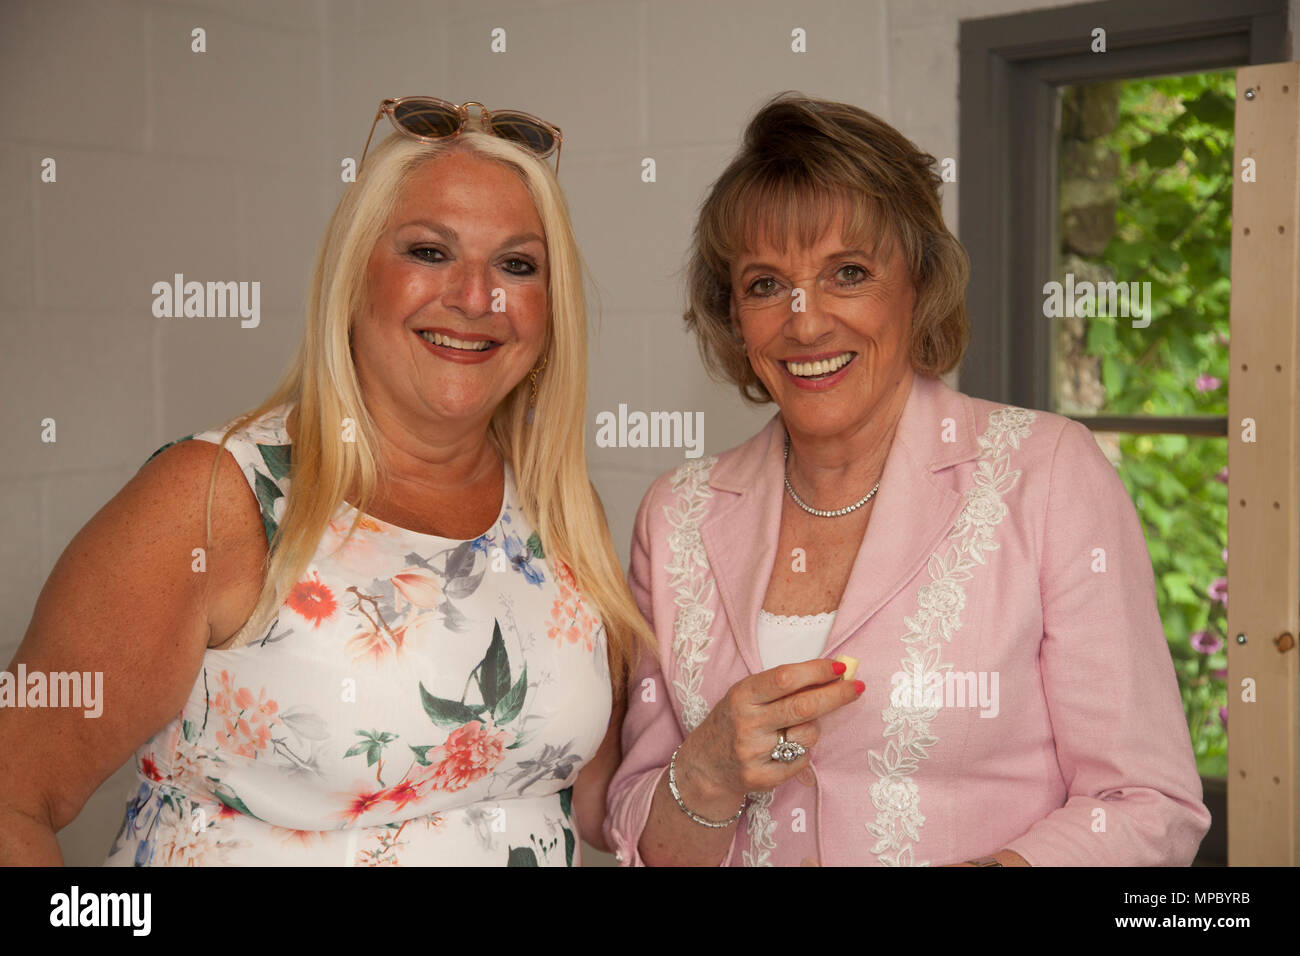 Chelsea, London, UK. 21st May, 2018. Chelsea, London, UK. 21st May 2018. Dame Esther Rantzen and Vanessa Feltz on the Welcome to Yorkshire garden at Chelsea Flower Show 2018, designed by Mark Gregory for Landformconsultants.co.uk Credit: Jenny Lilly/Alamy Live News - Stock Image